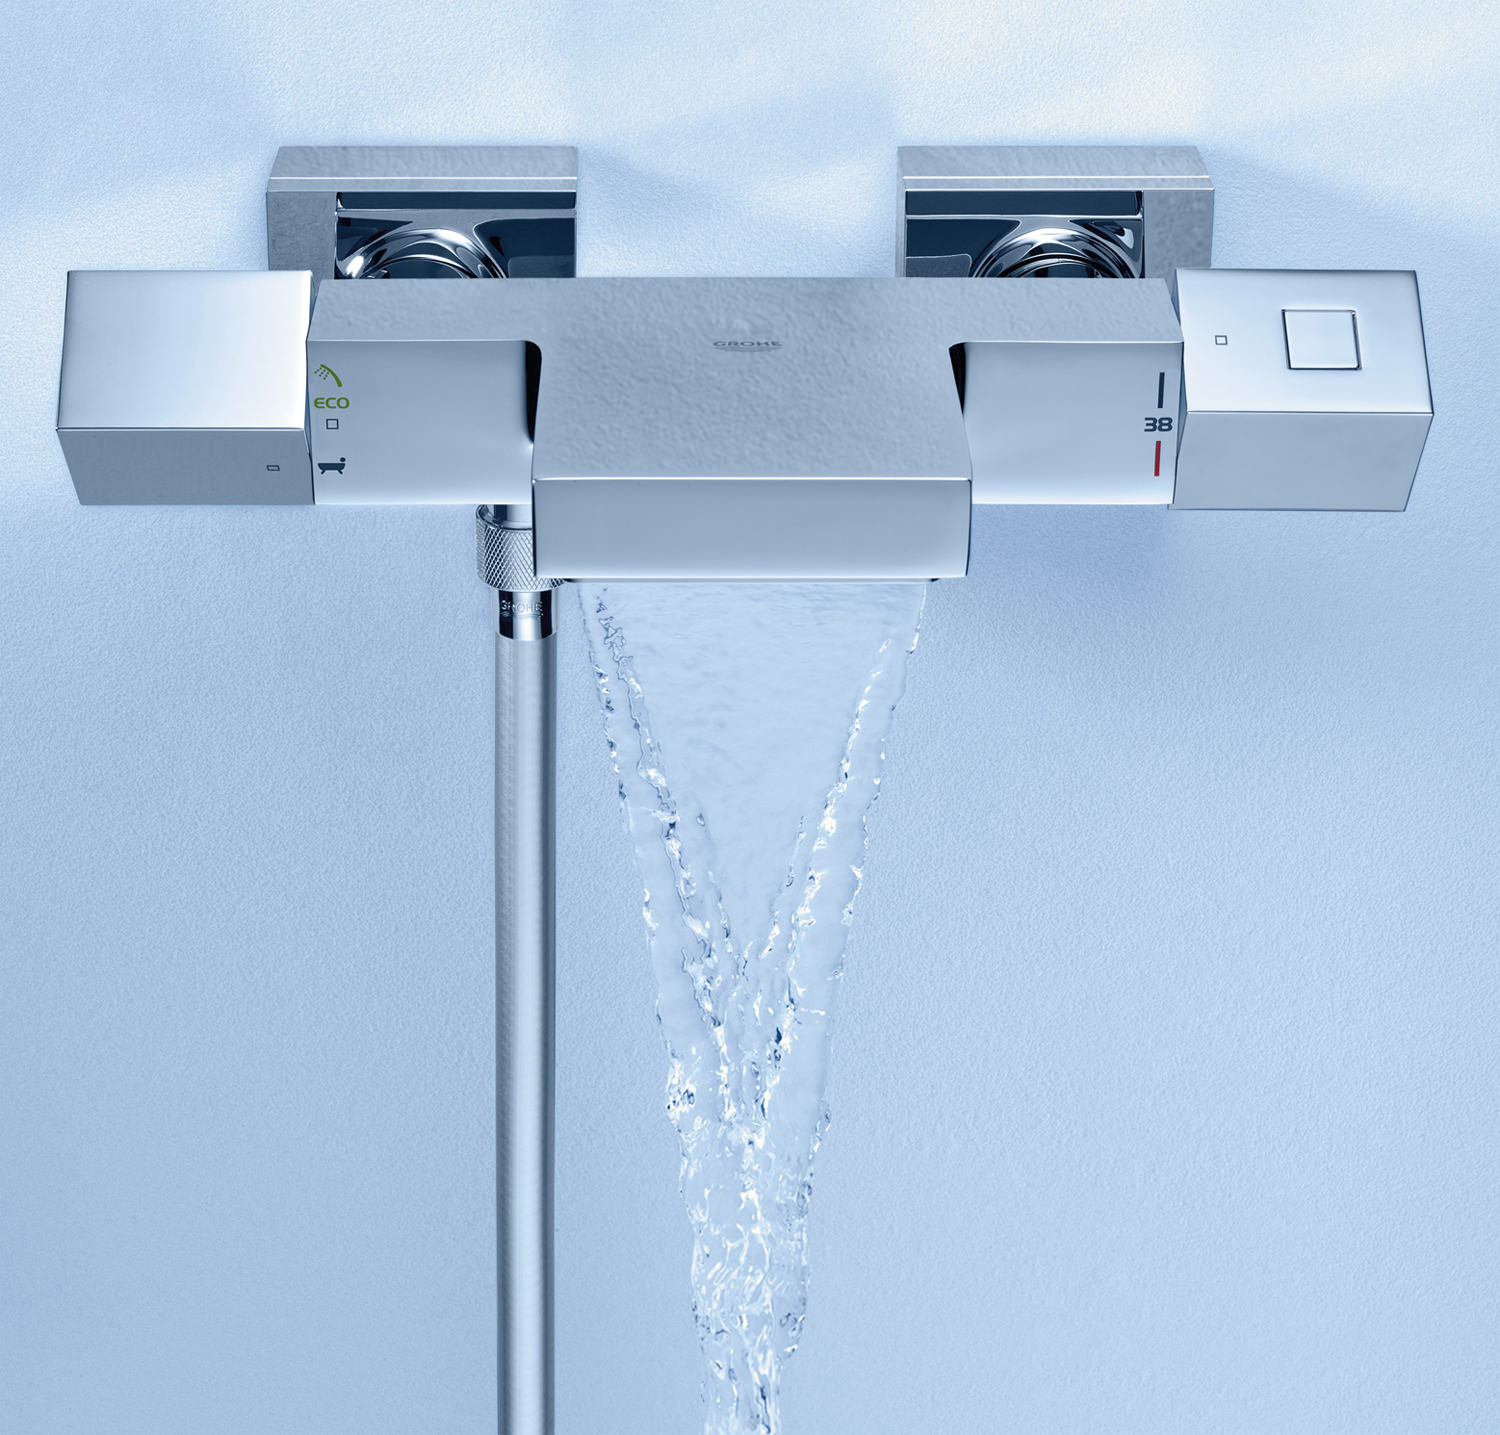 Grohe Grohtherm Cube Thermostatic Wall Mounted Bath Shower Mixer Tap